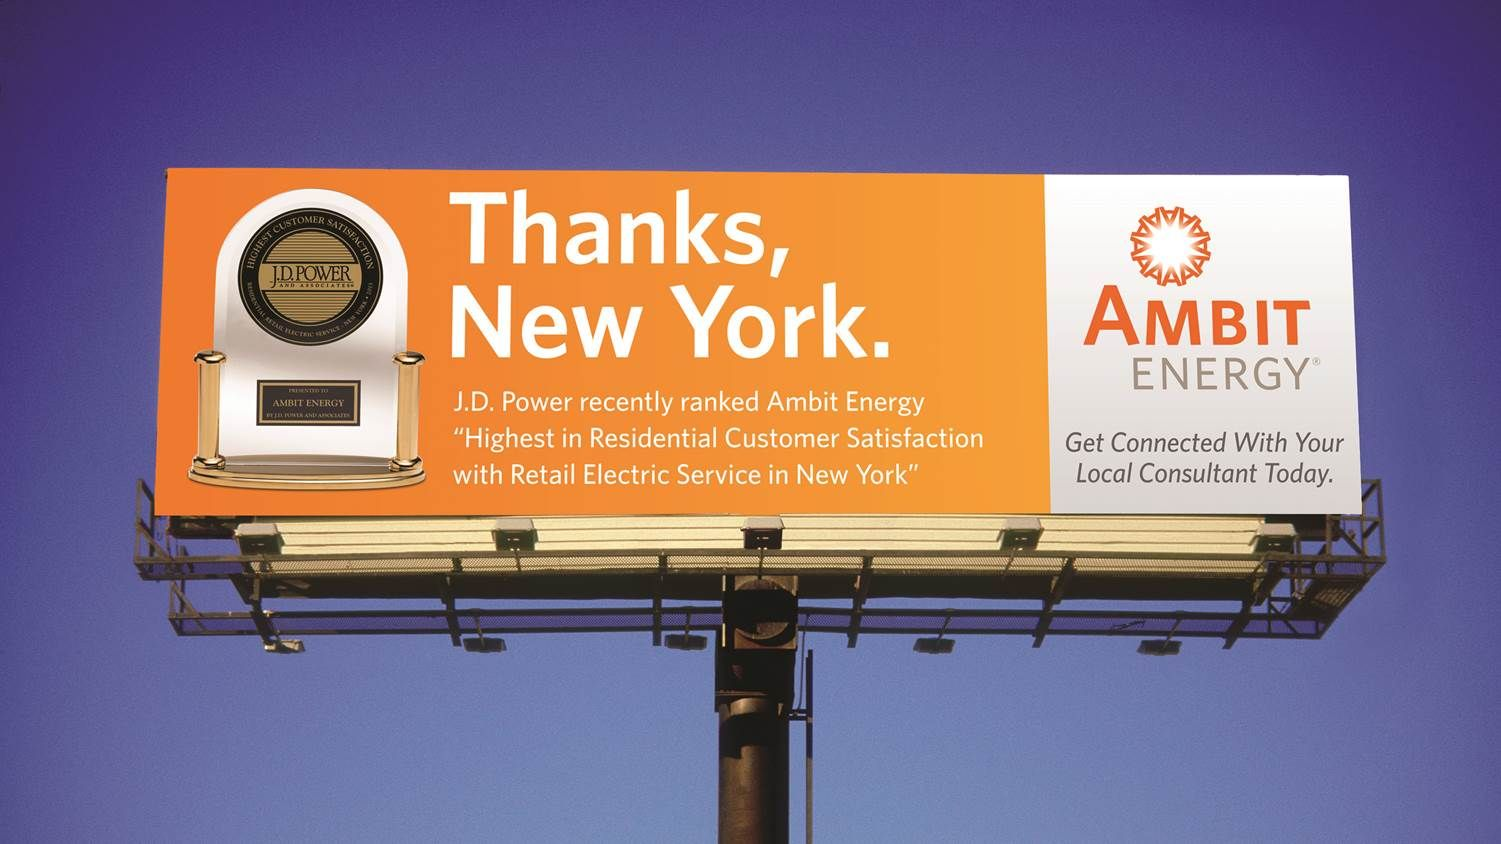 Pin by andrewgoodman on ambit | Ambit energy, Electricity